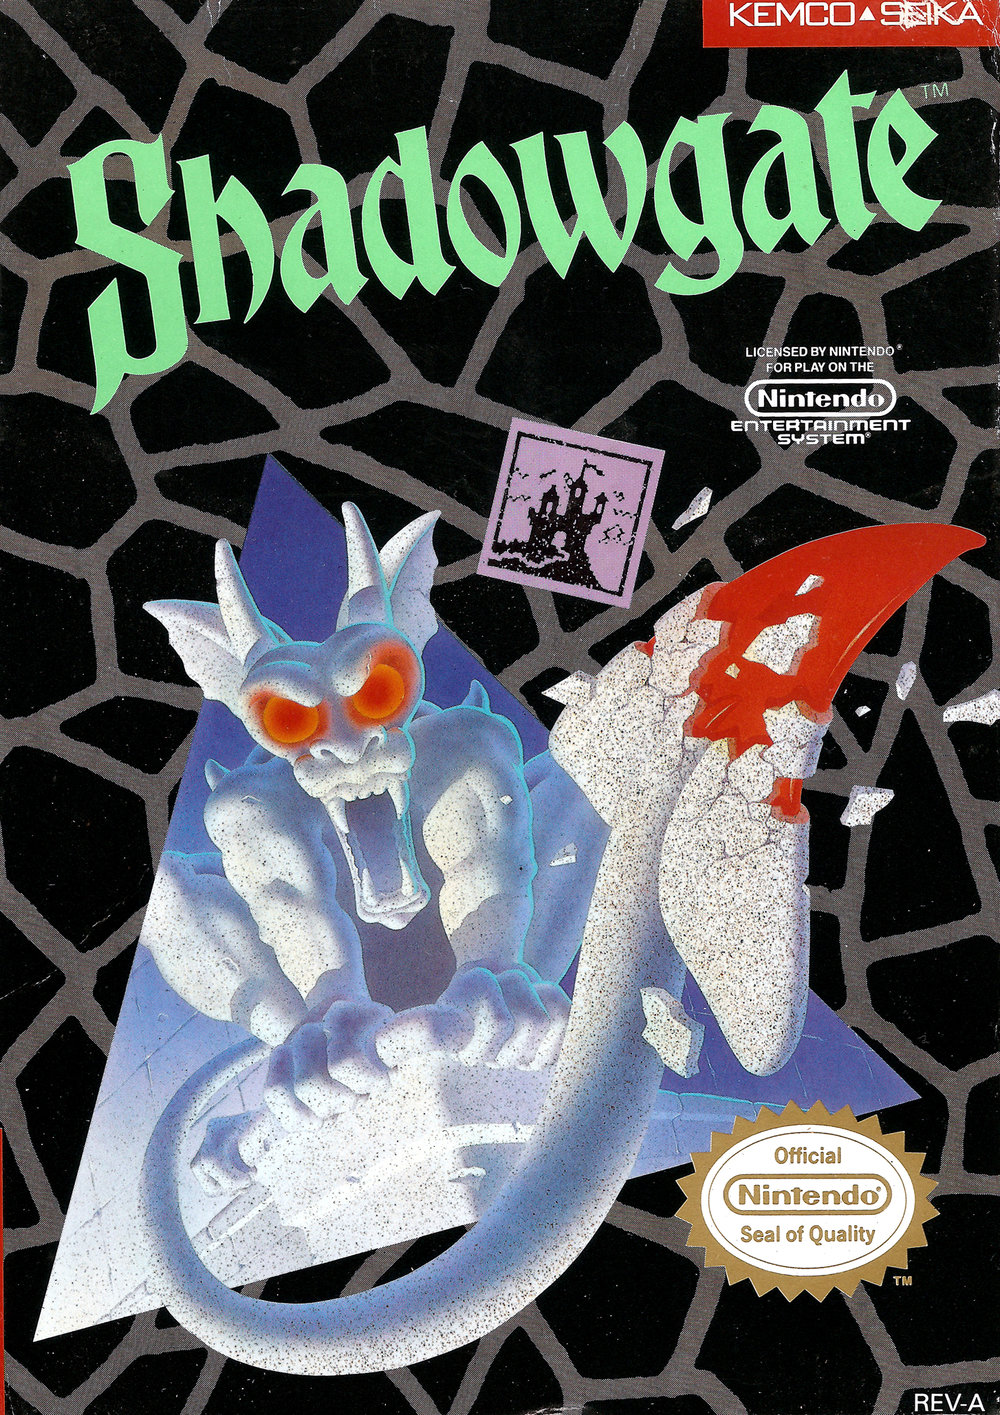 2372402-shadowgate_cover_001.jpg